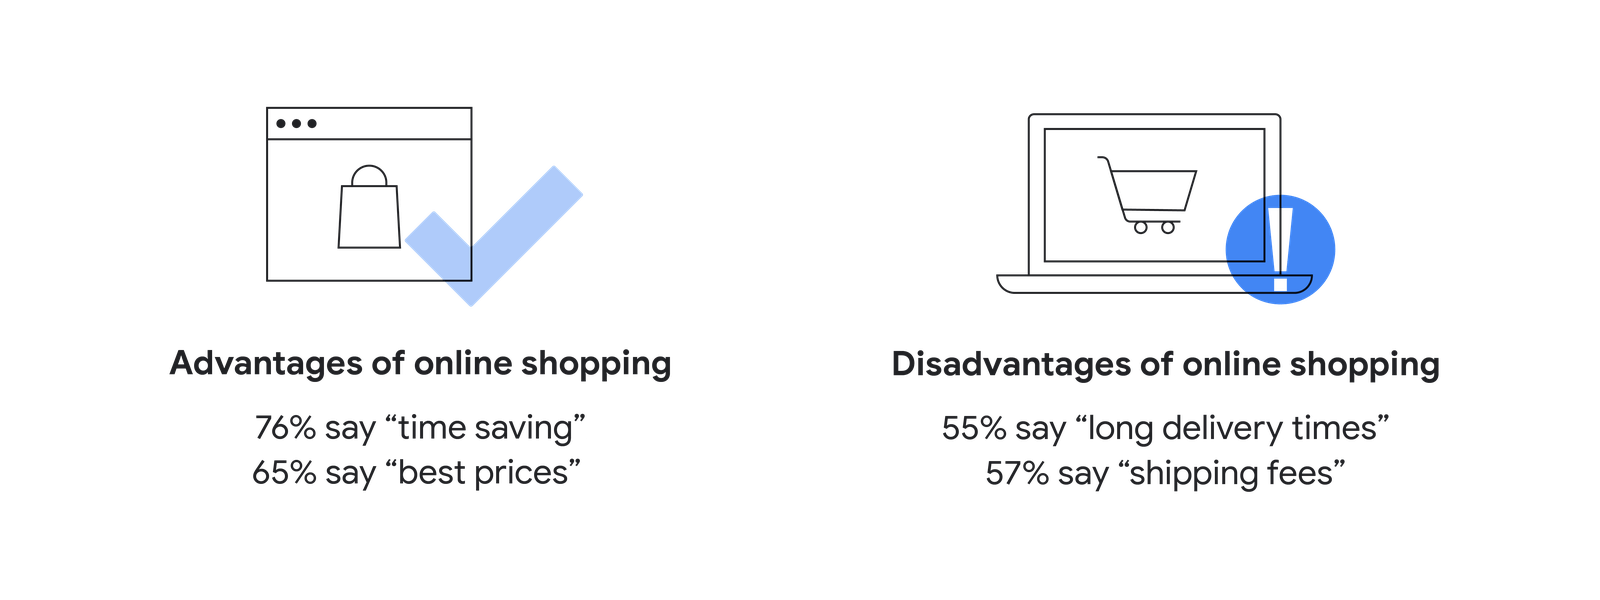 Advantages and disadvantages of online shopping for apac consumers